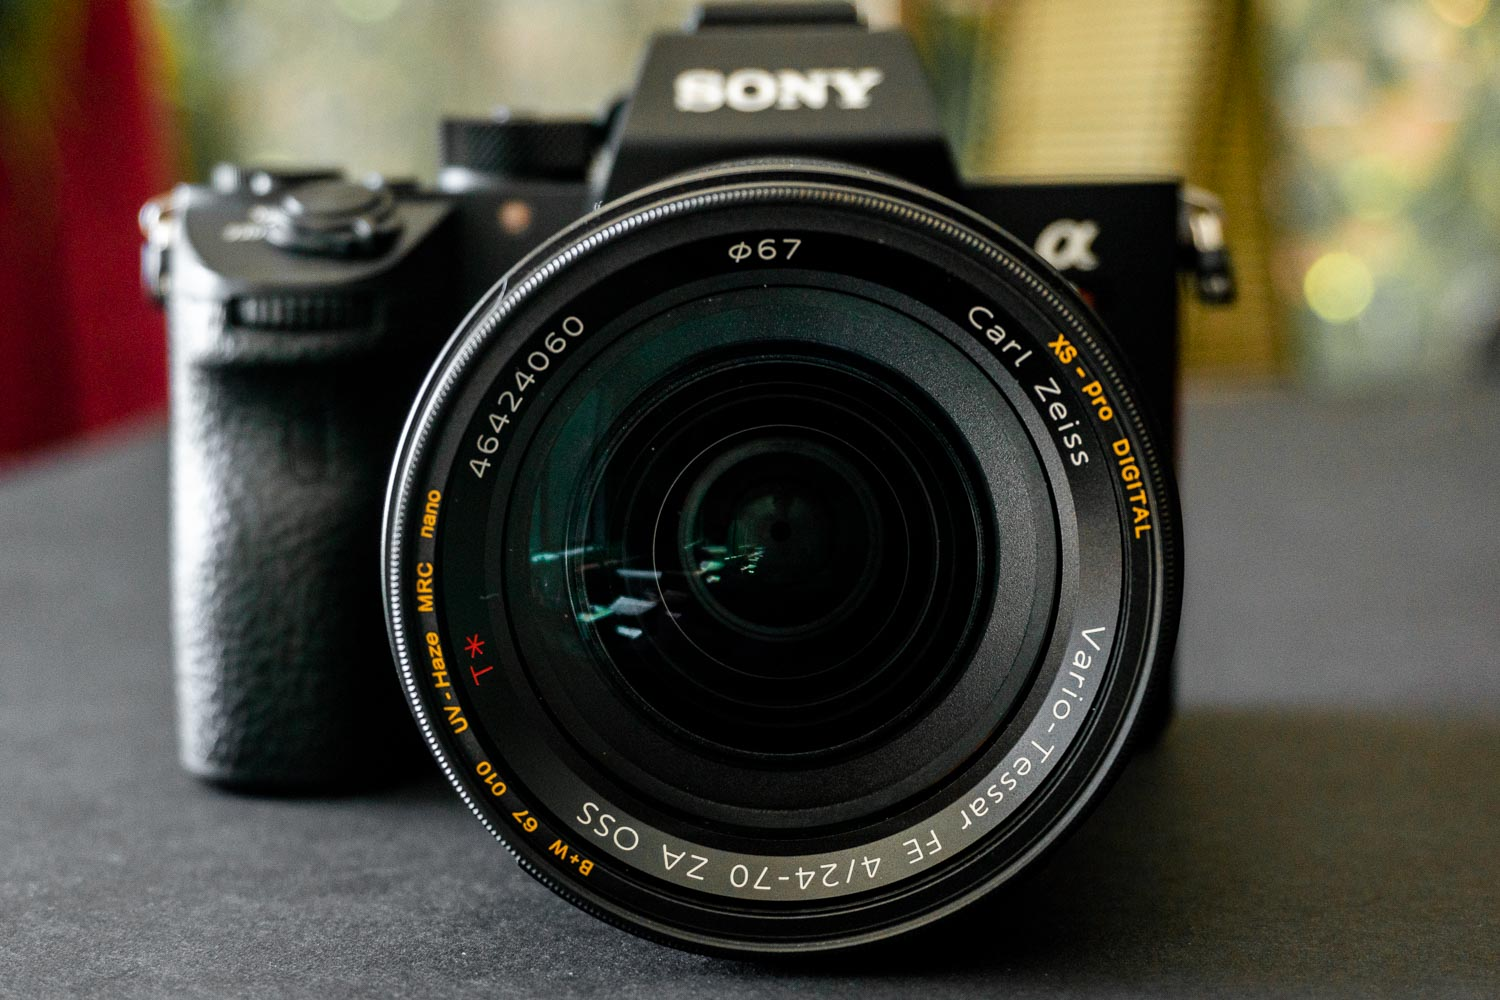 9 Recommended Accessories for Your New Sony a7R III or a7 III Camera